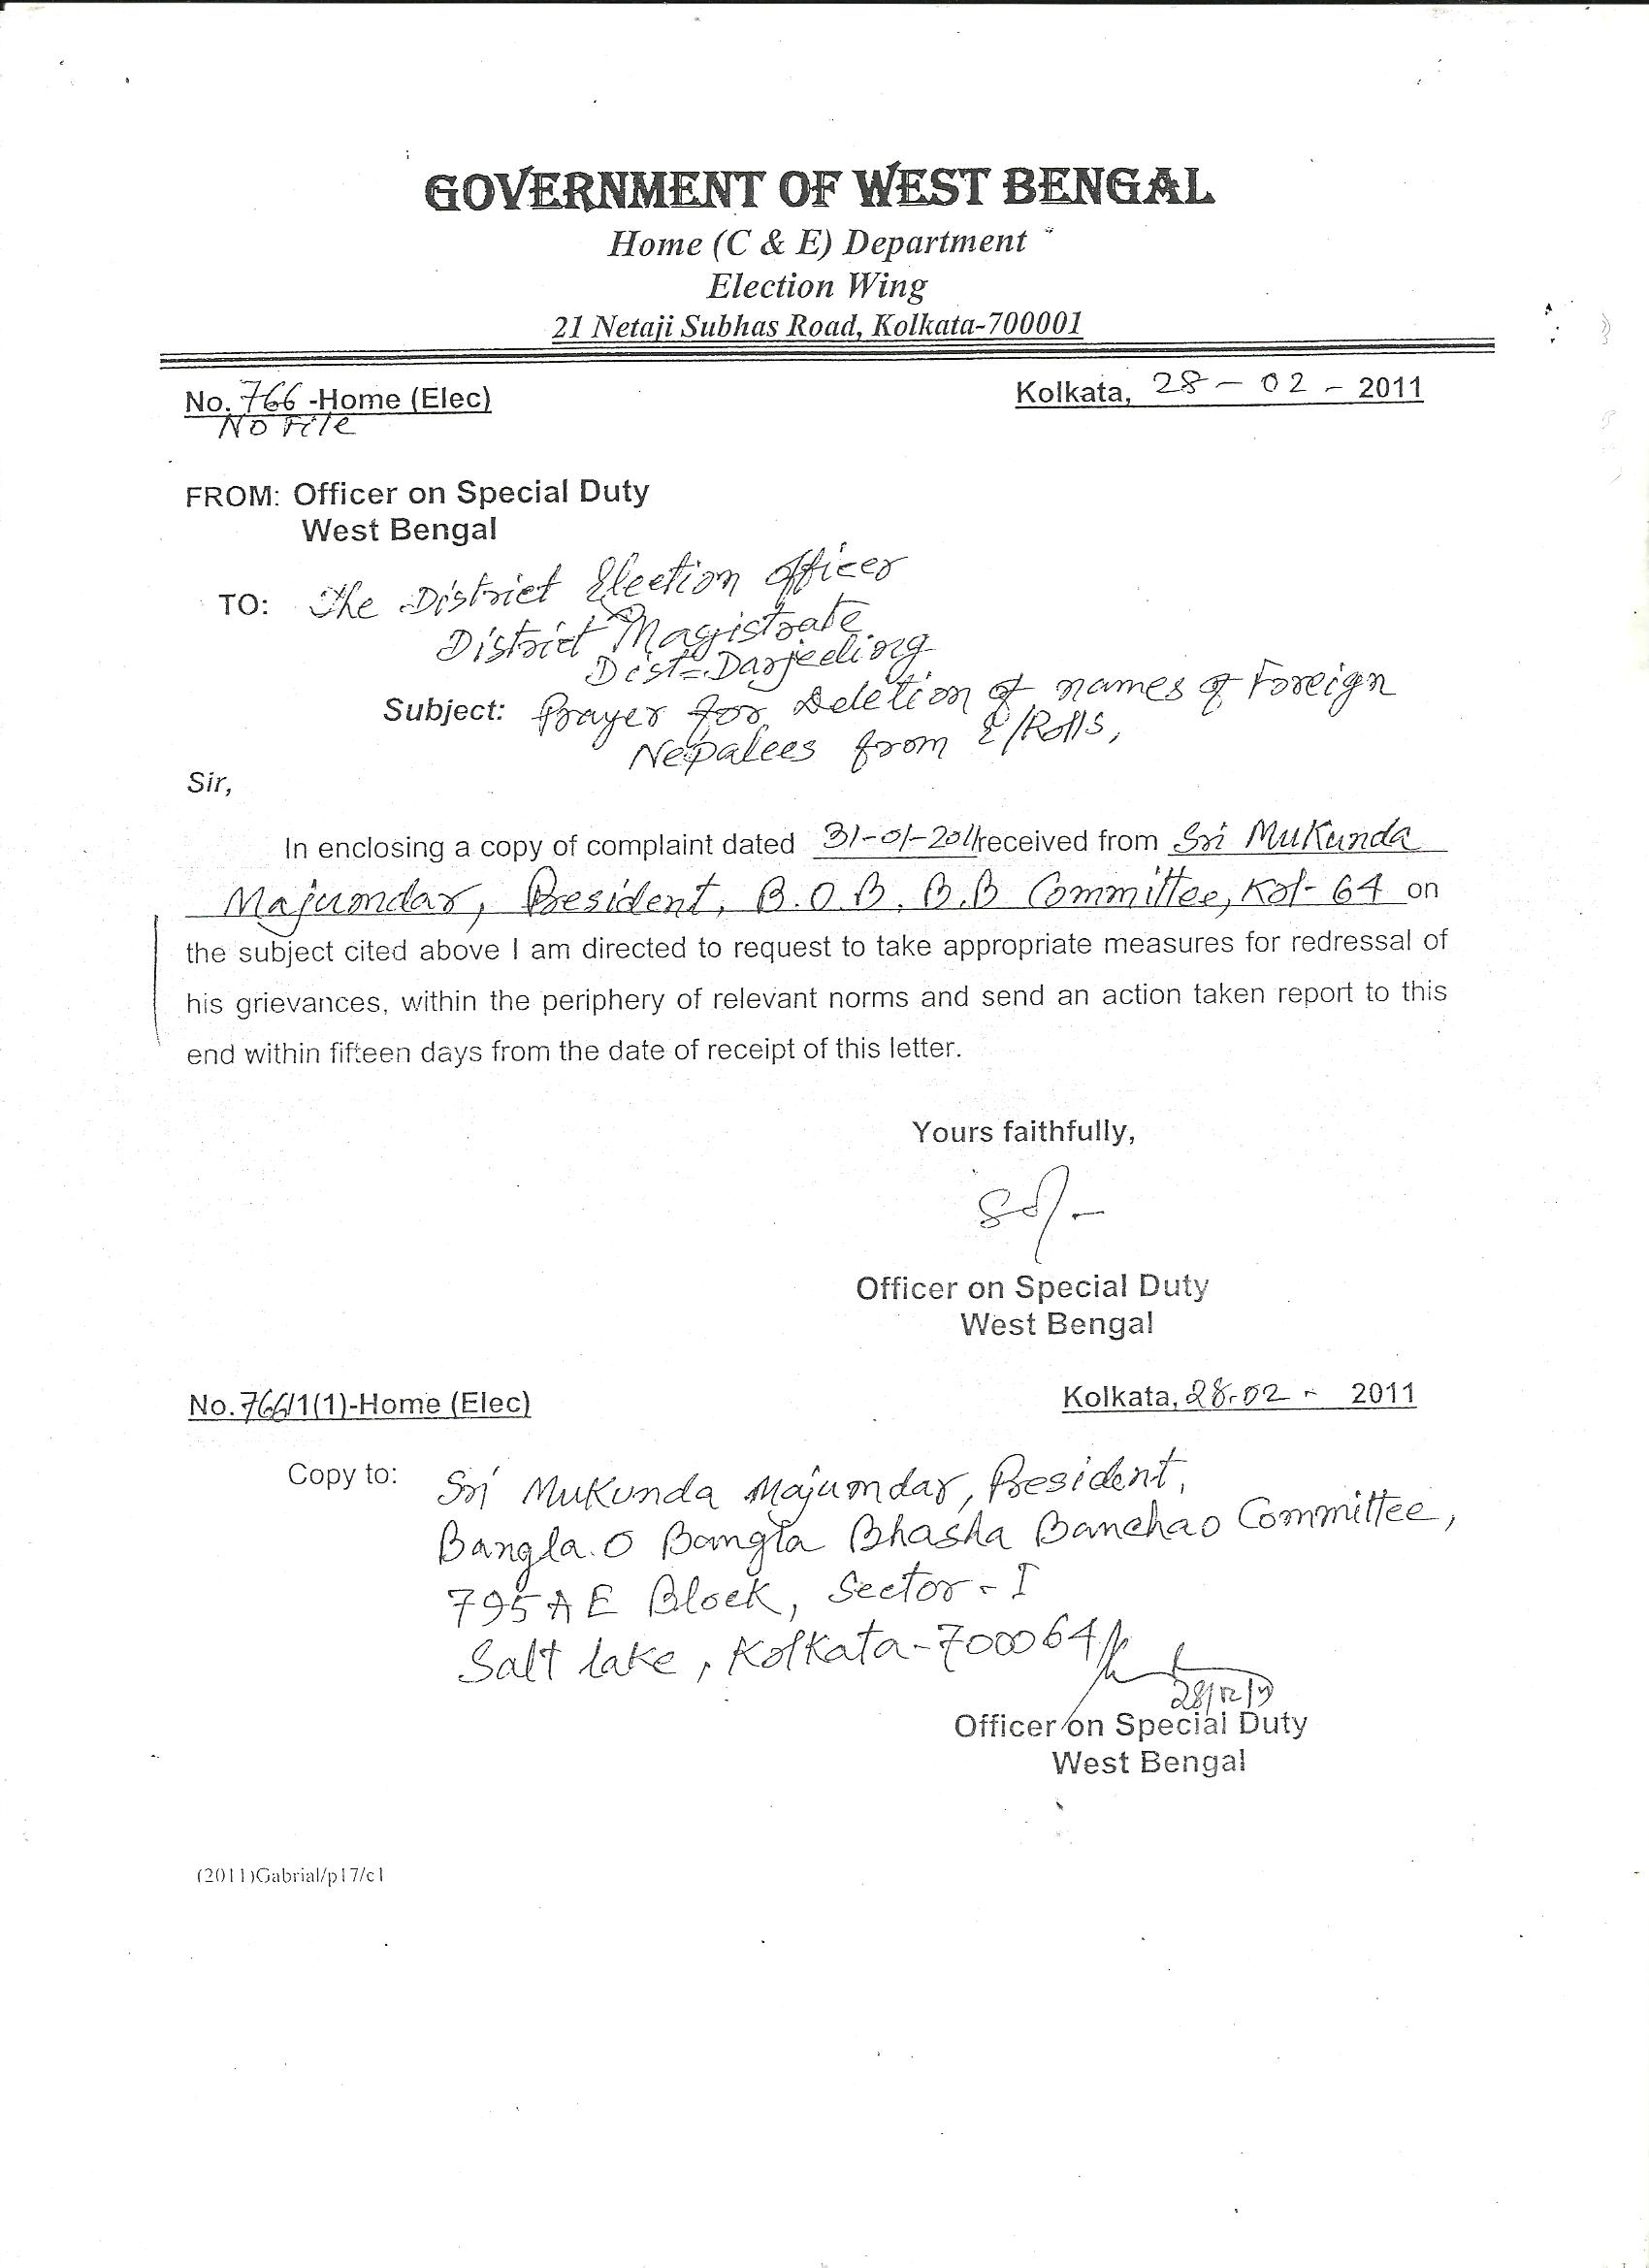 Recognition Of Illegal Nepali Infiltration In North Bengal